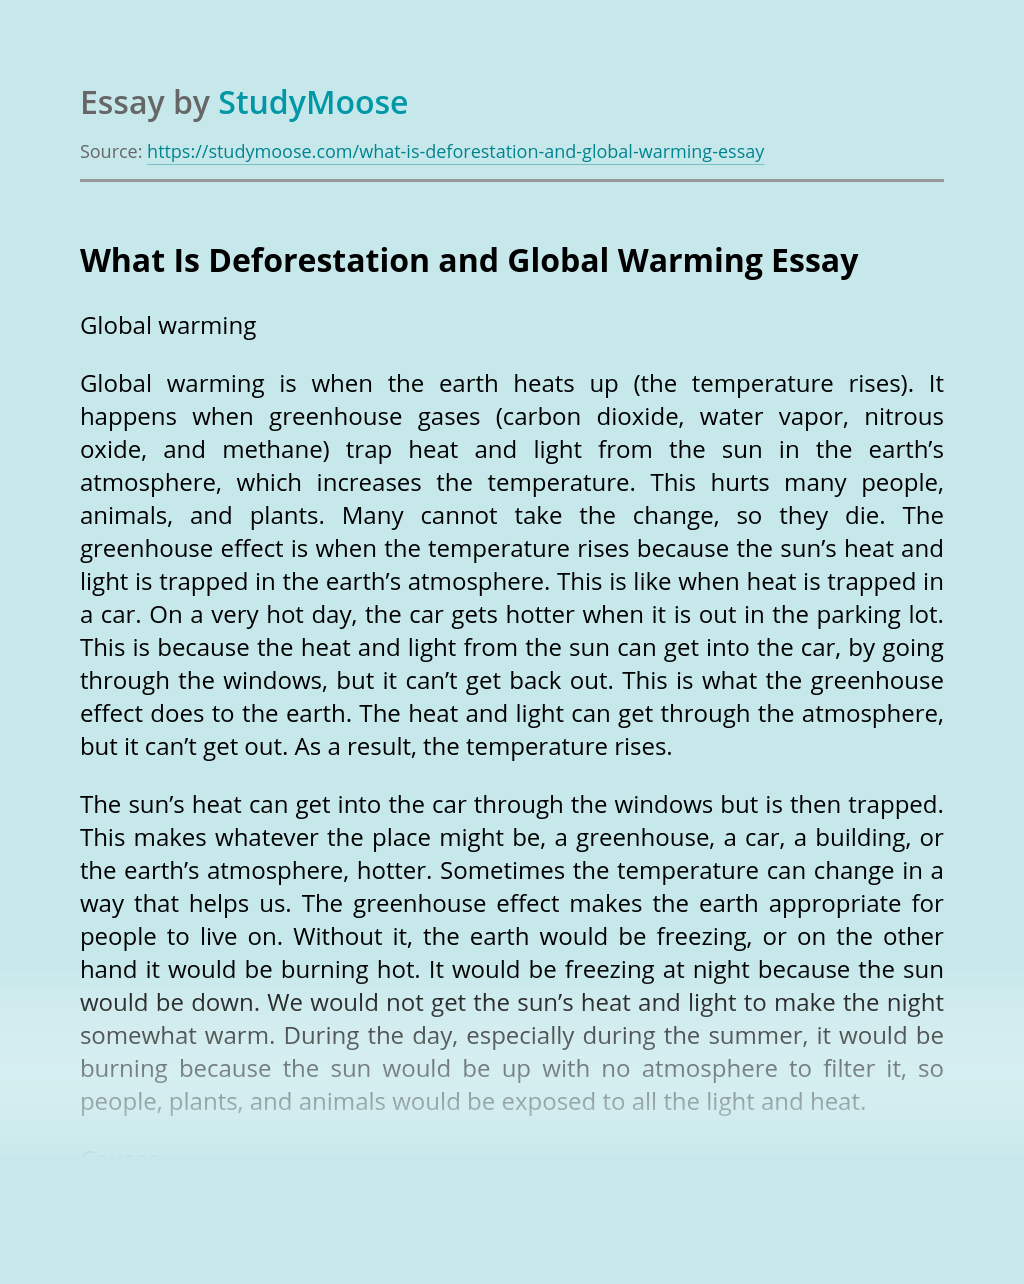 What Is Deforestation and Global Warming